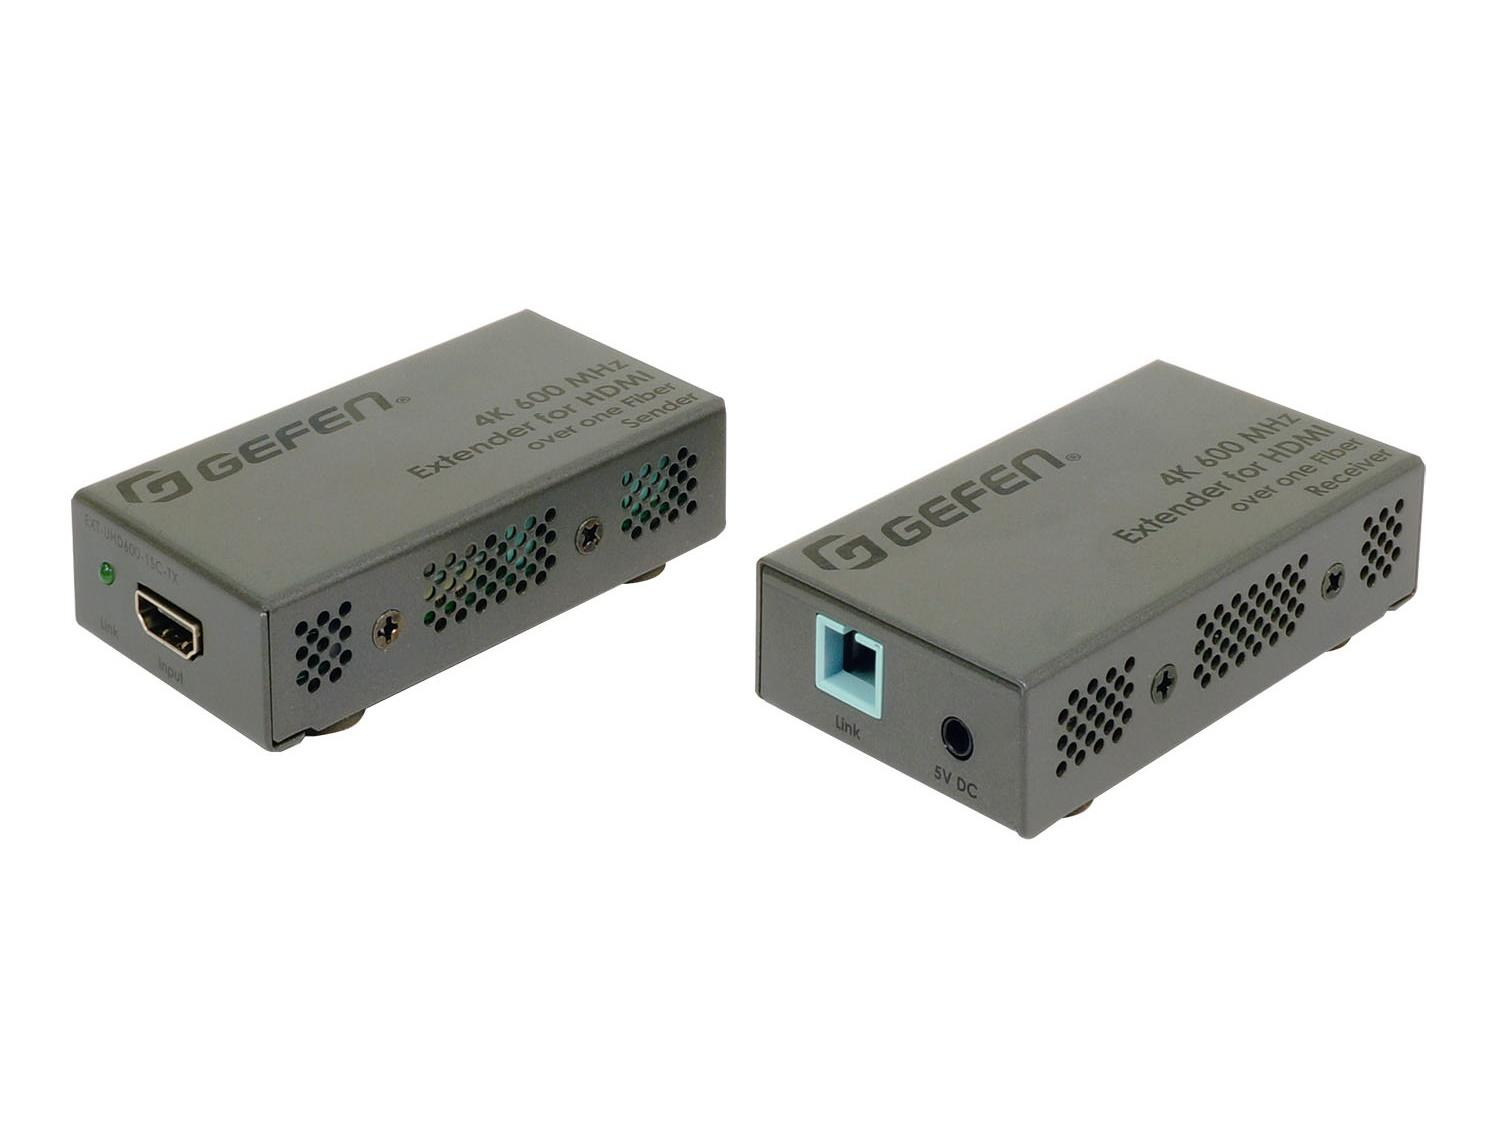 Gefen EXT-UHD600-1SC 4K UHD 600MHz HDMI Extender (Transmitter/Receiver) over 1xFiber-Optic Cable up to 200m